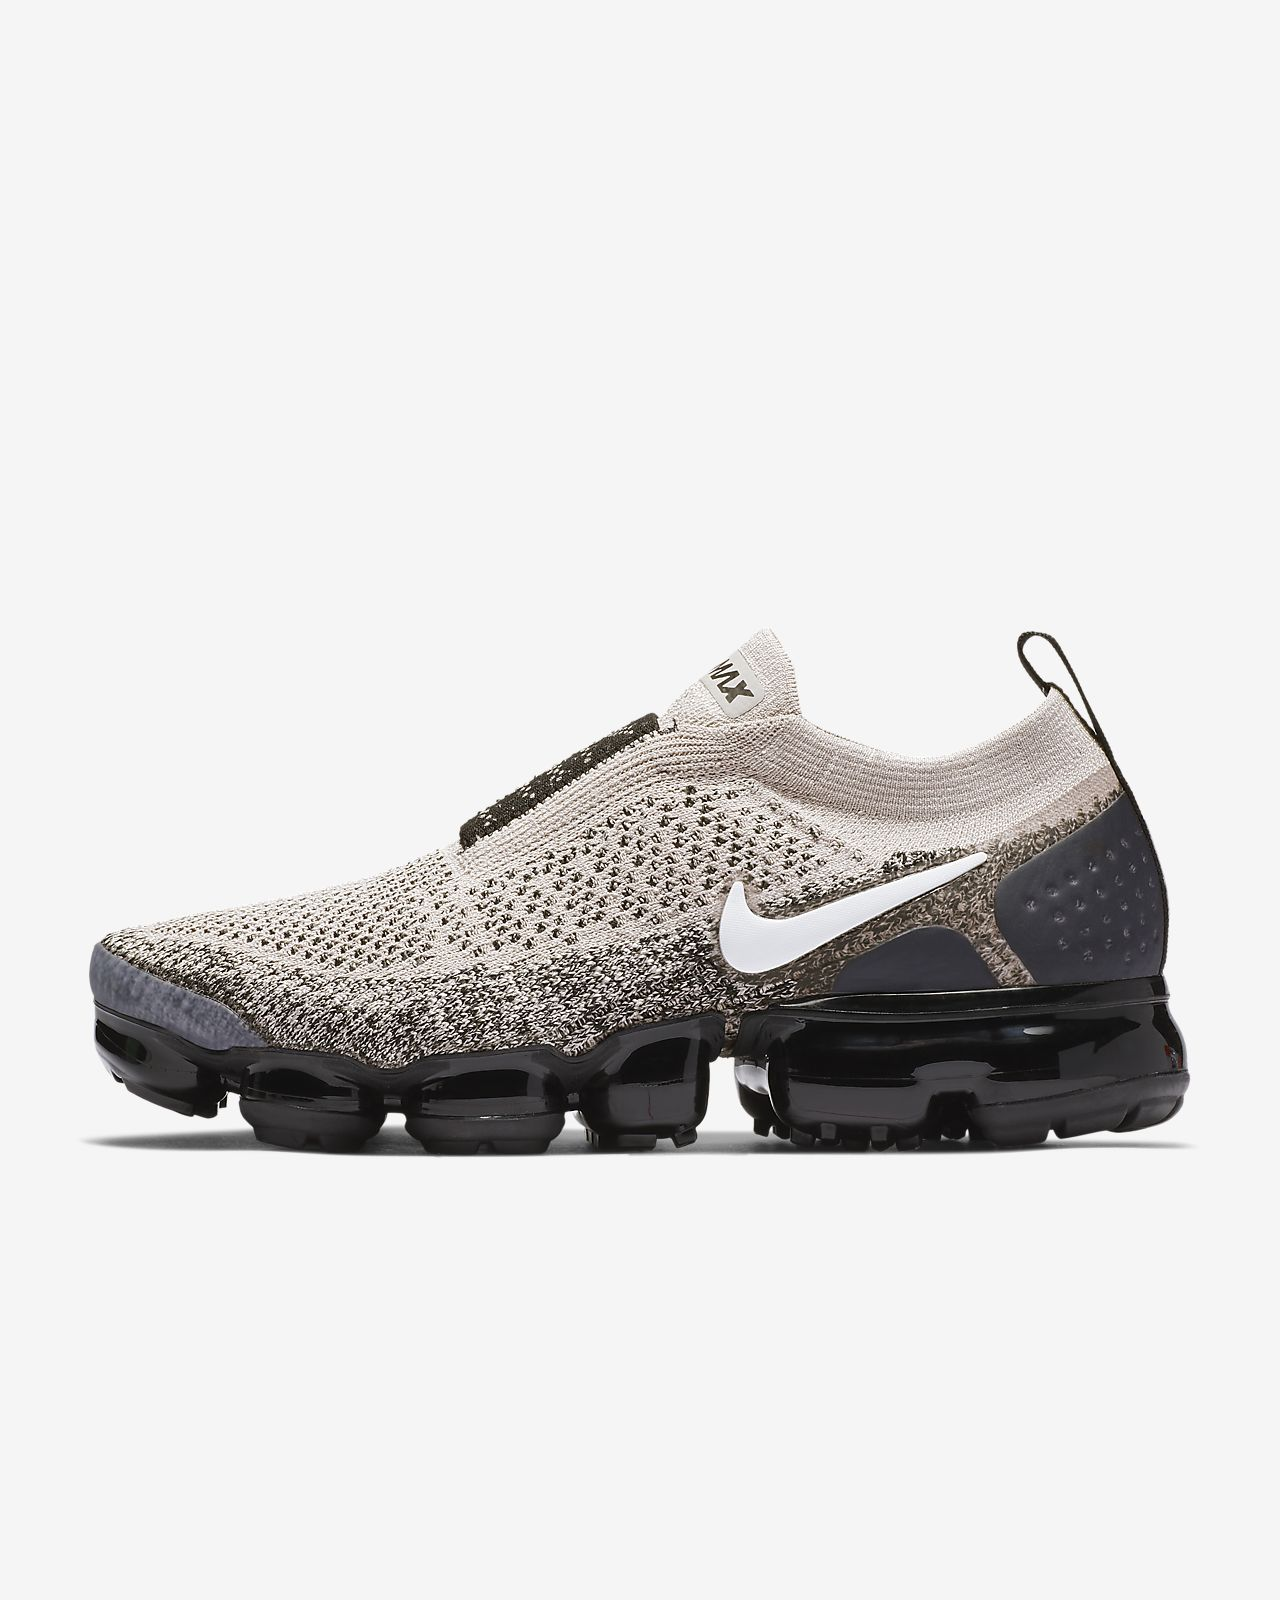 reputable site e6562 c8b9f Nike Air VaporMax Flyknit Moc 2